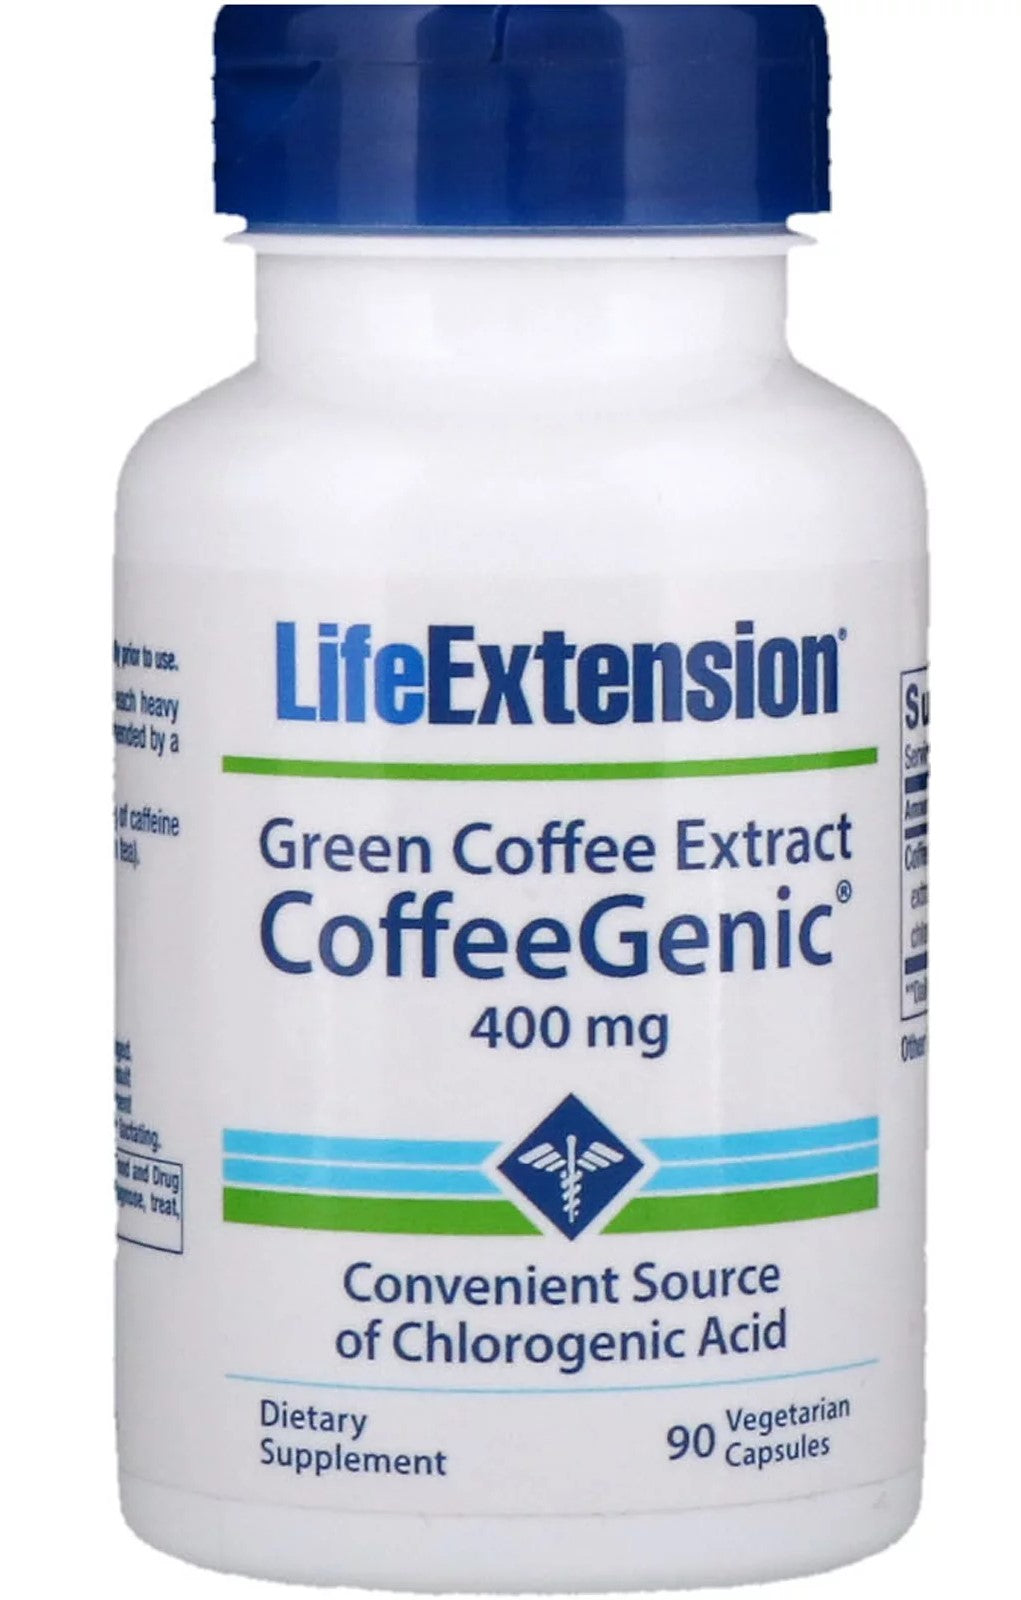 CoffeeGenic, Green Coffee Extract, 400 mg - 90 vcaps